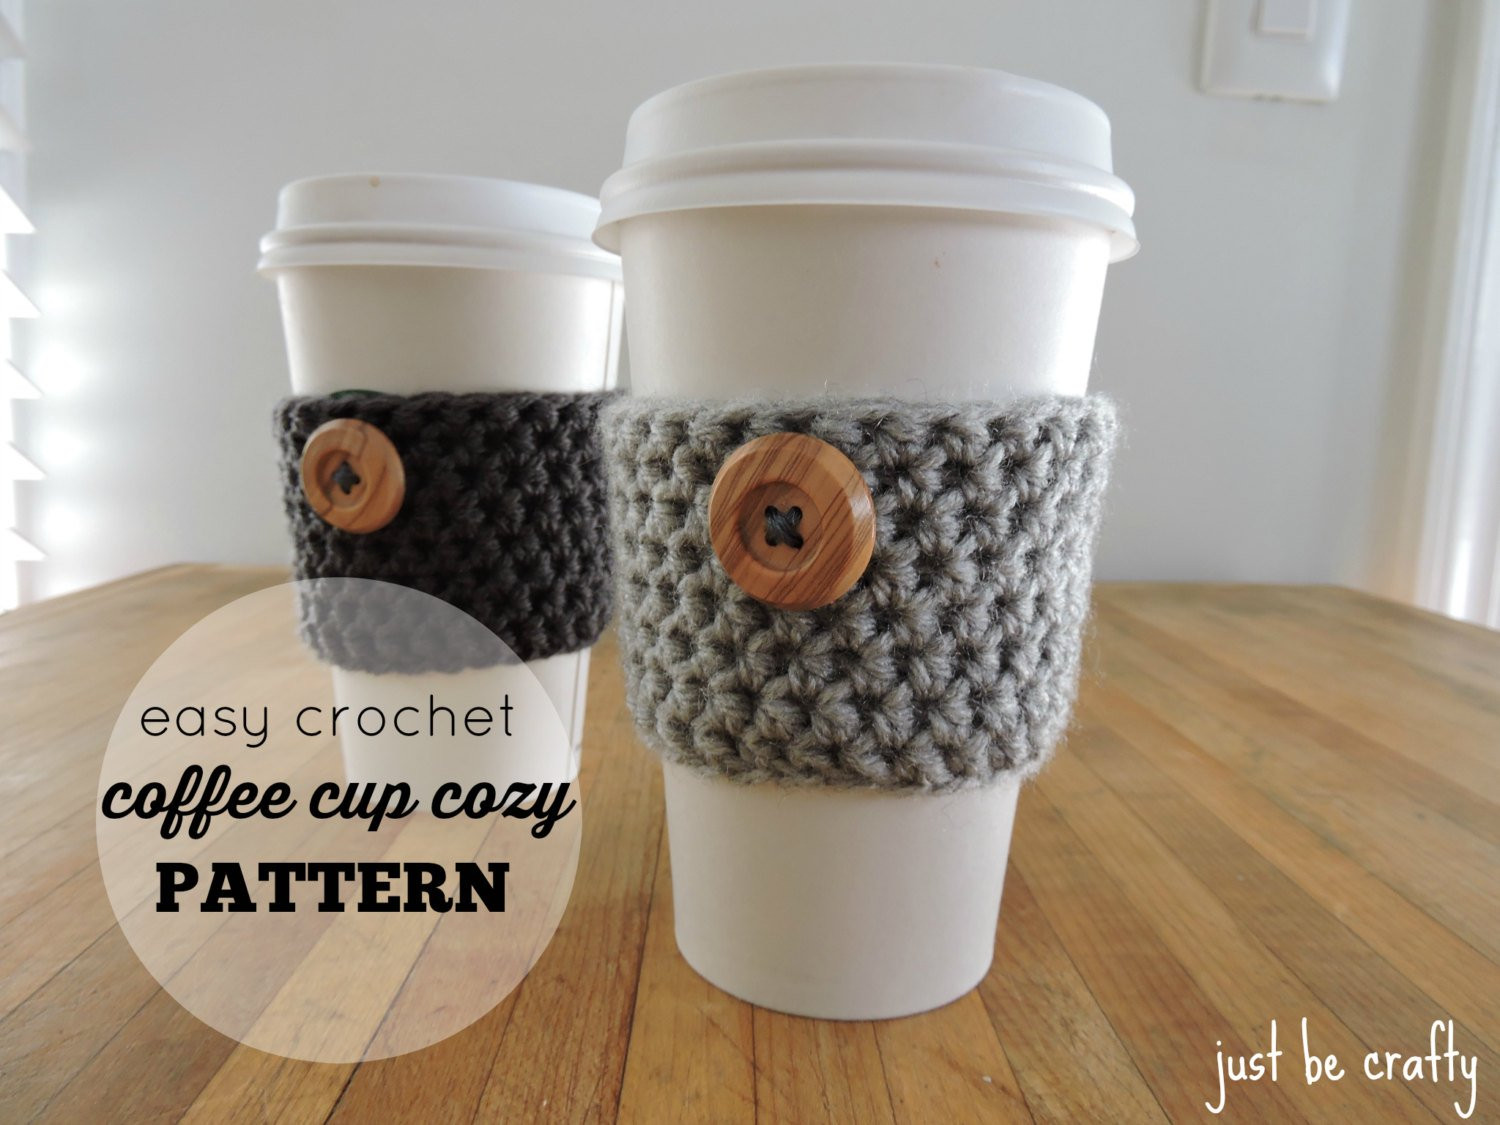 Crochet Coffee Cup Cozy Inspirational Crochet Coffee Cup Cozy Pattern Pdf Download Coffee Cup Cozy Of Crochet Coffee Cup Cozy New Crochet Tea Cozy Coffee Cup Sleeve Coffee Sleeve Mug Cozy